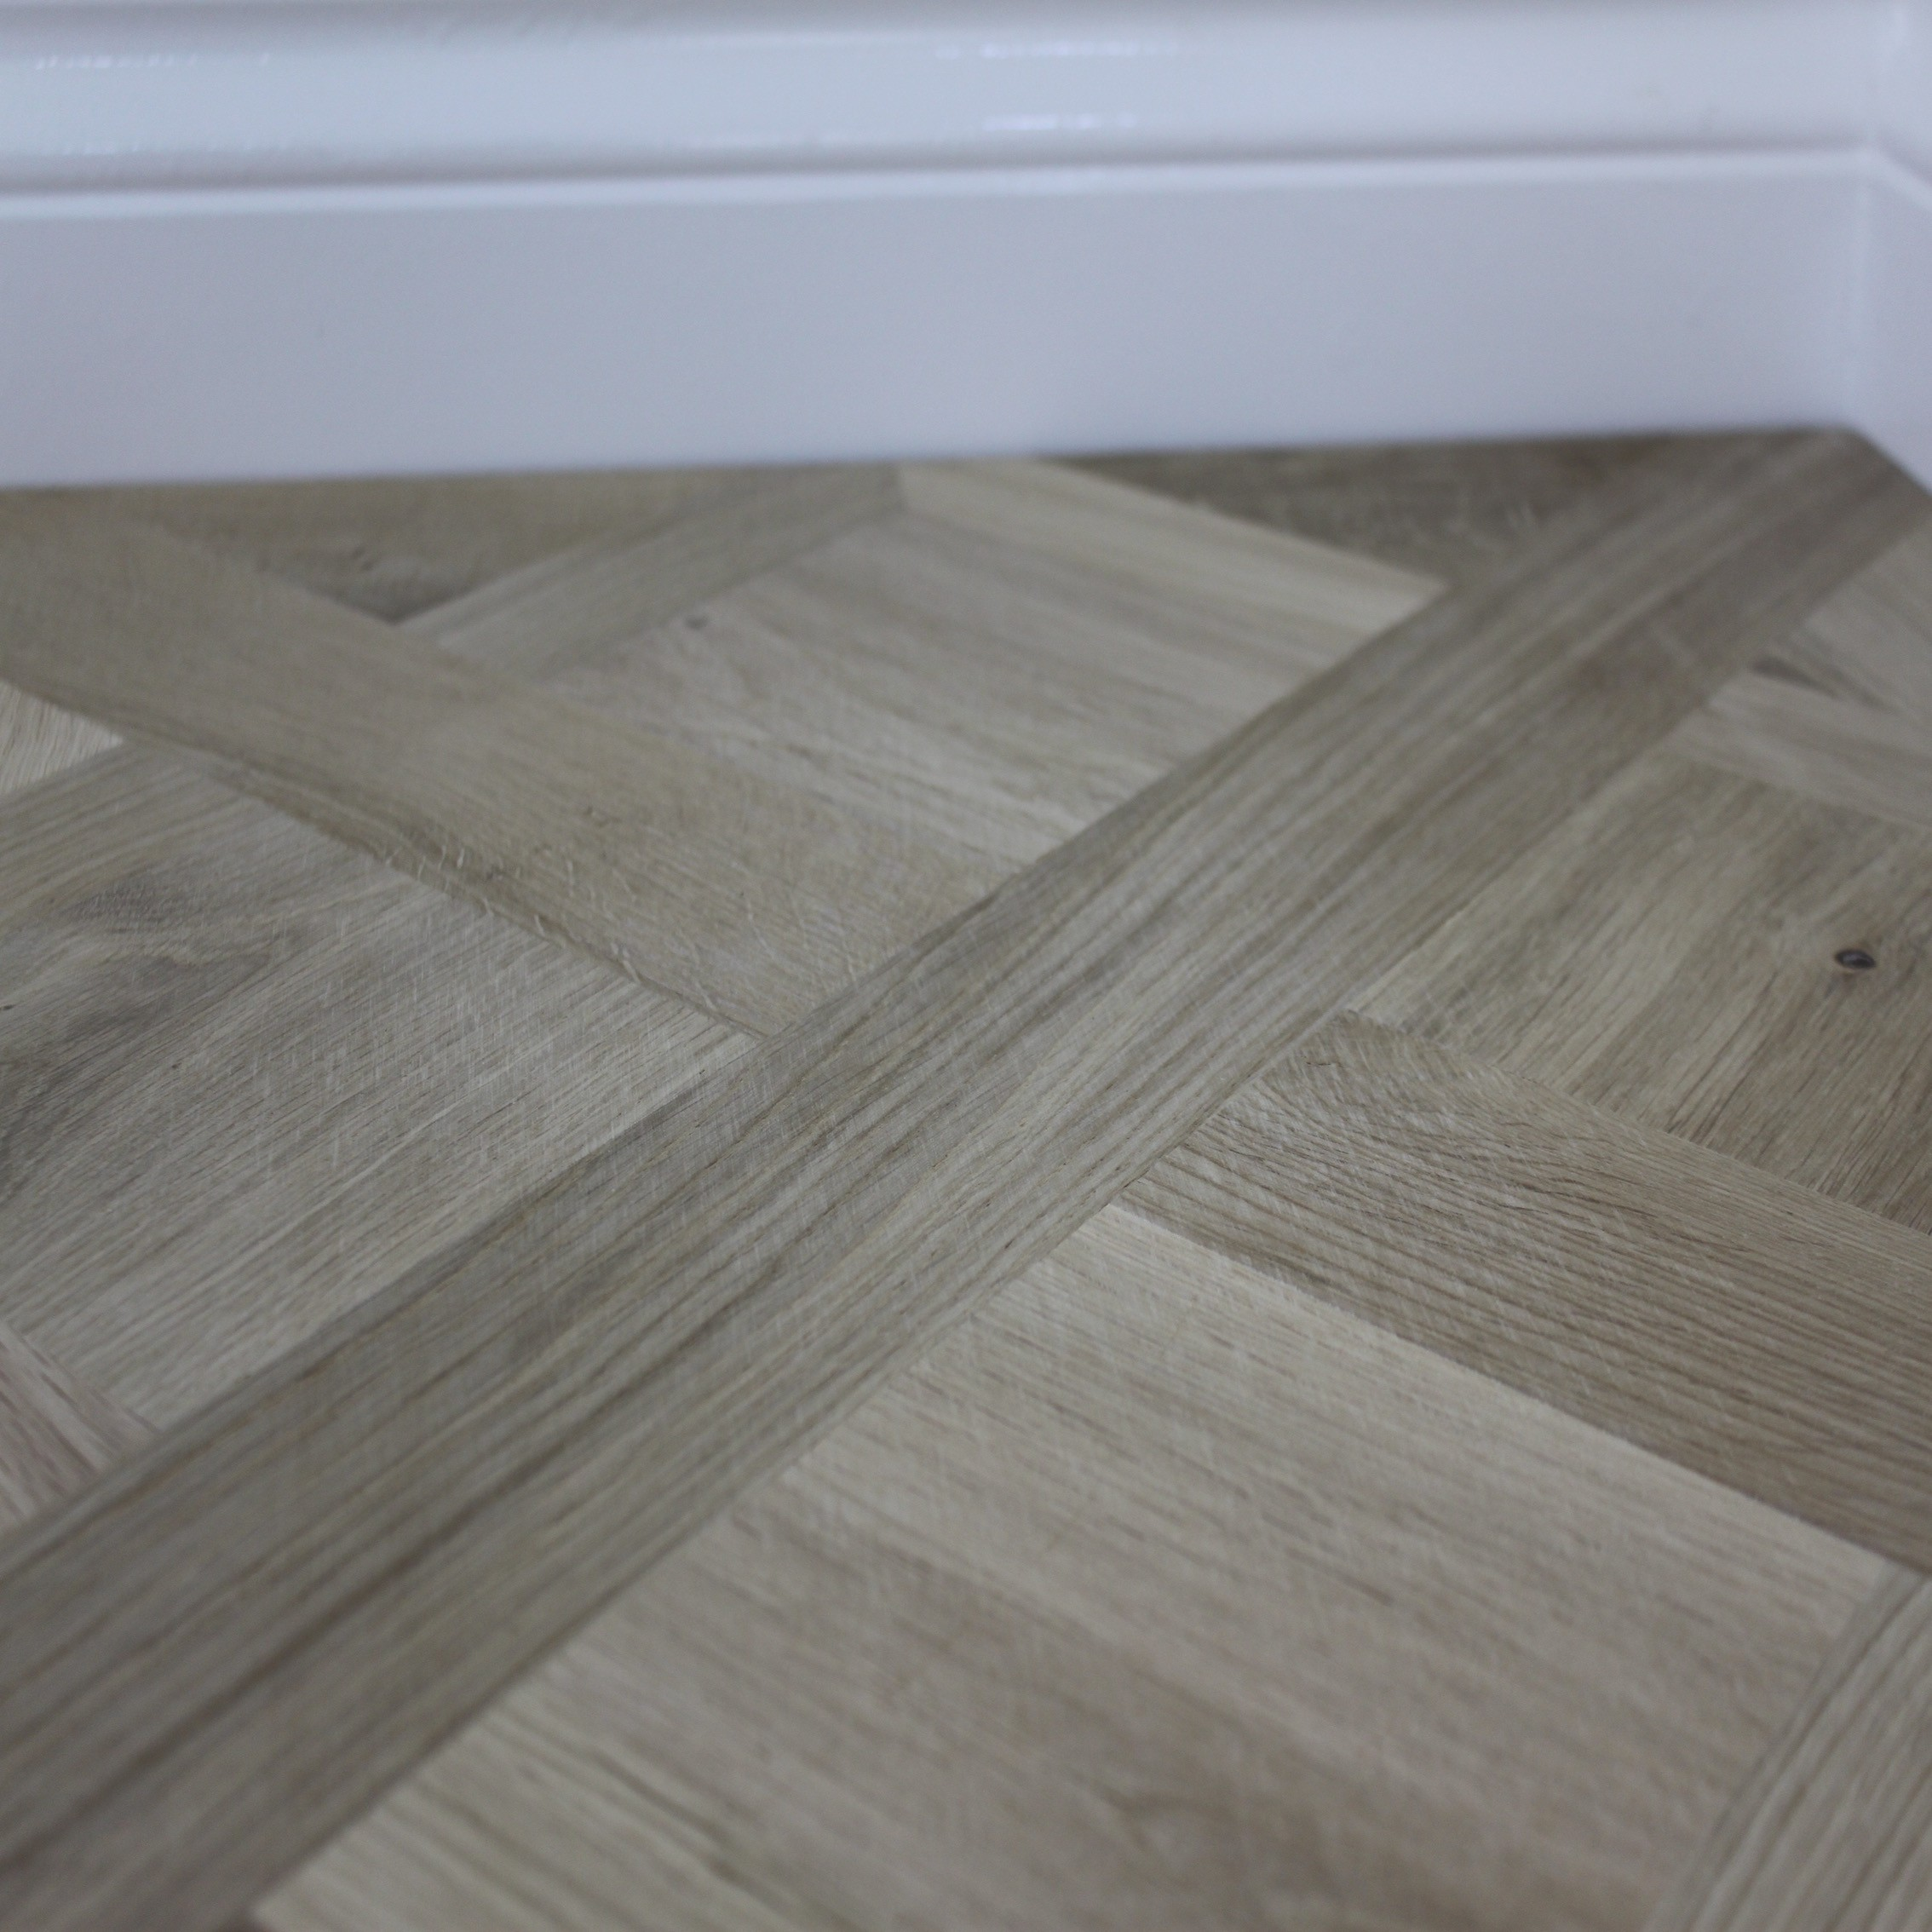 Maxi parquet panel oak unfinished maxi versailles panels oak unfinished engineered wood flooring 580x580mm